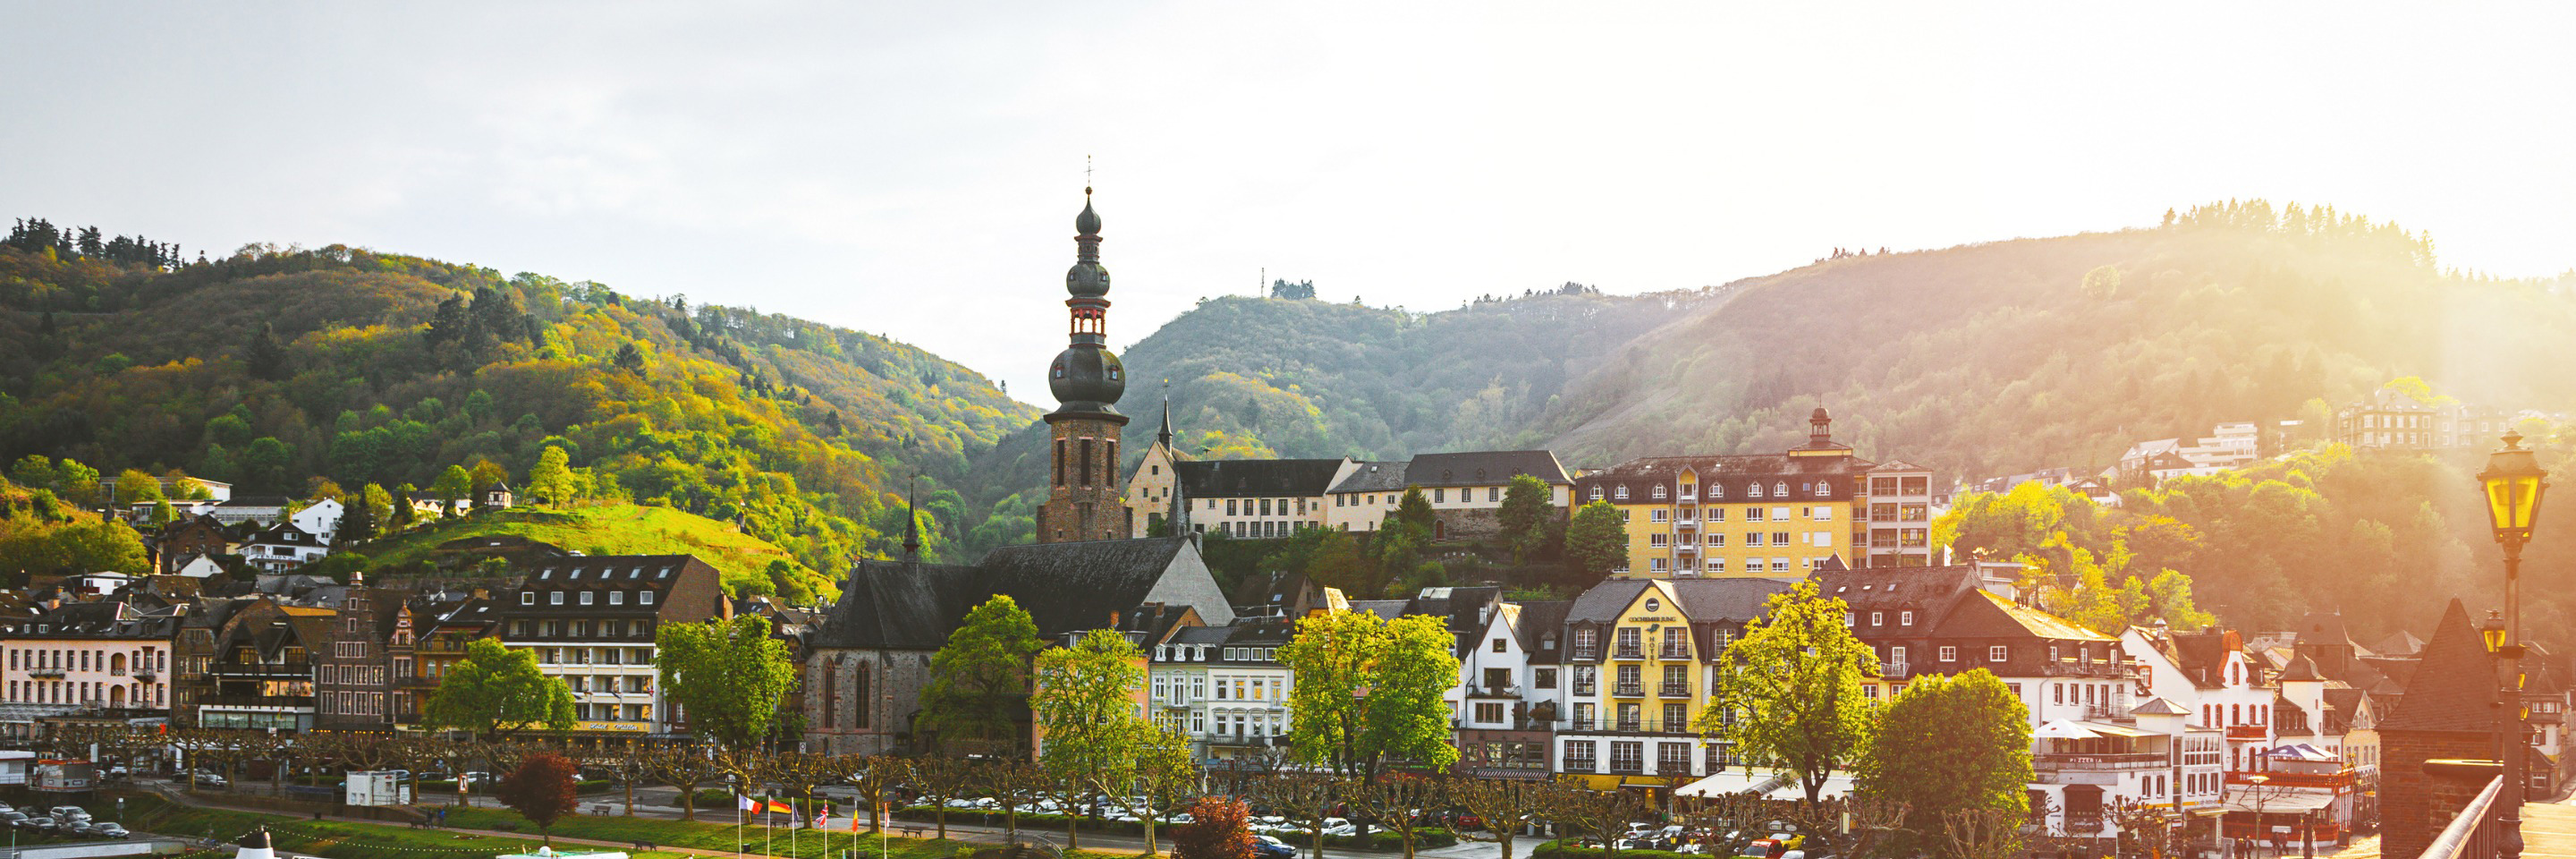 The Rhine & Moselle: Canals, Vineyards & Castles with   1 Night in Amsterdam for Wine Lovers